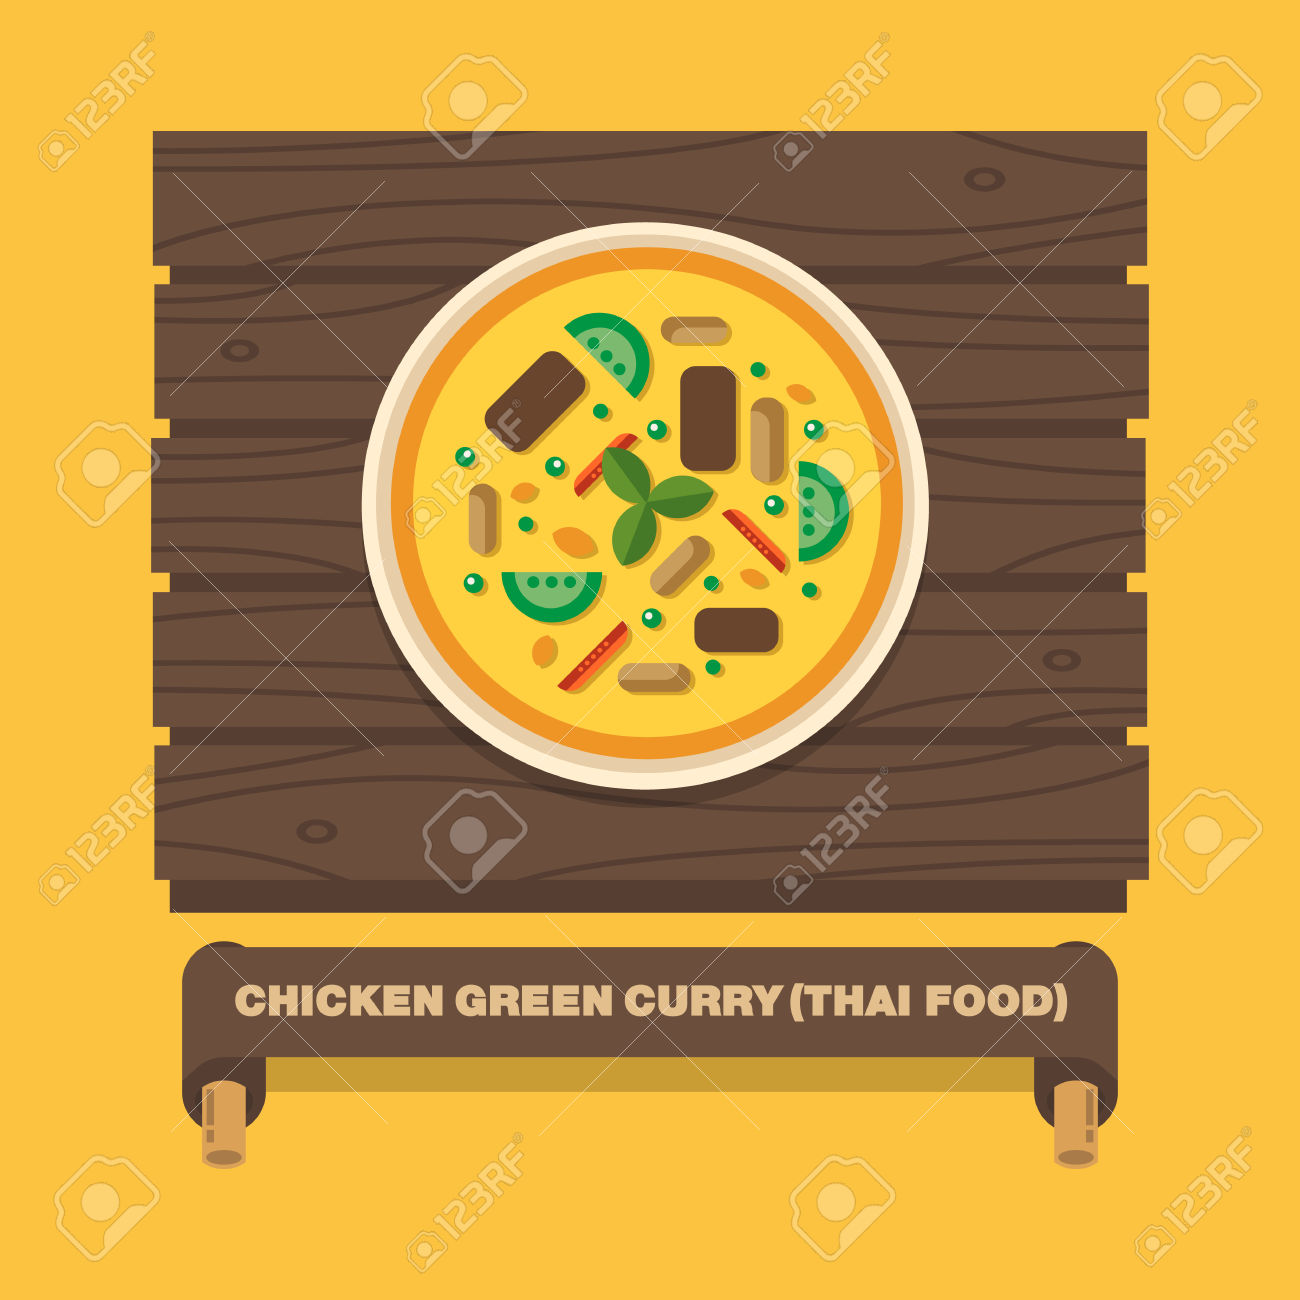 184 Curry Chicken Stock Vector Illustration And Royalty Free Curry.